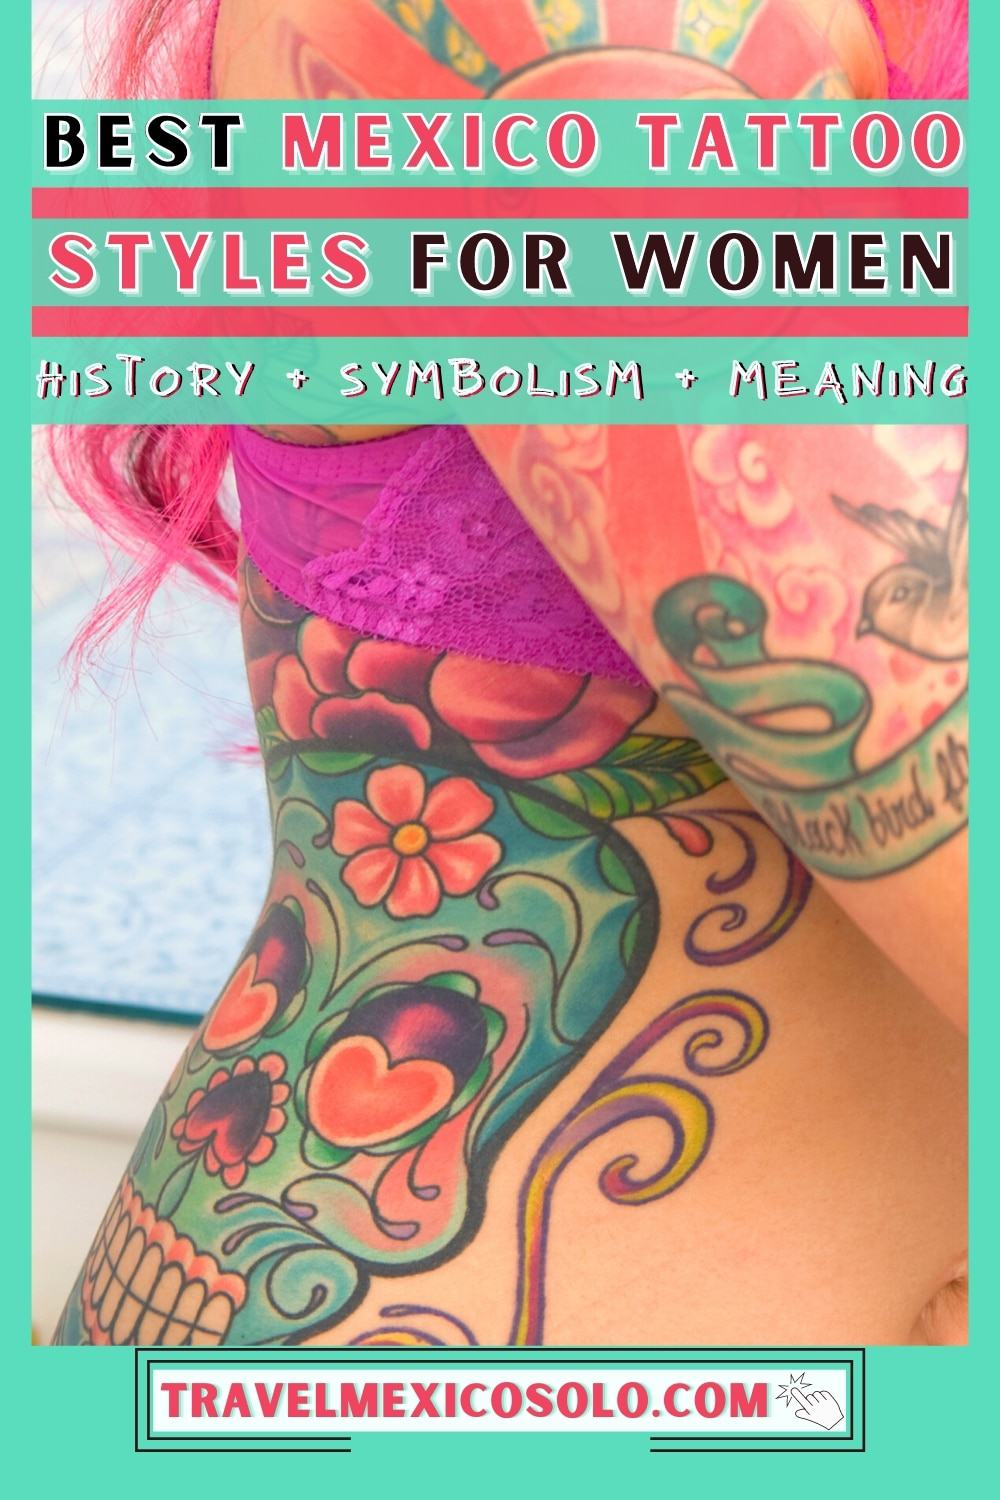 Sugar skull colorful tattoo on a woman | Mexican tattoos for women